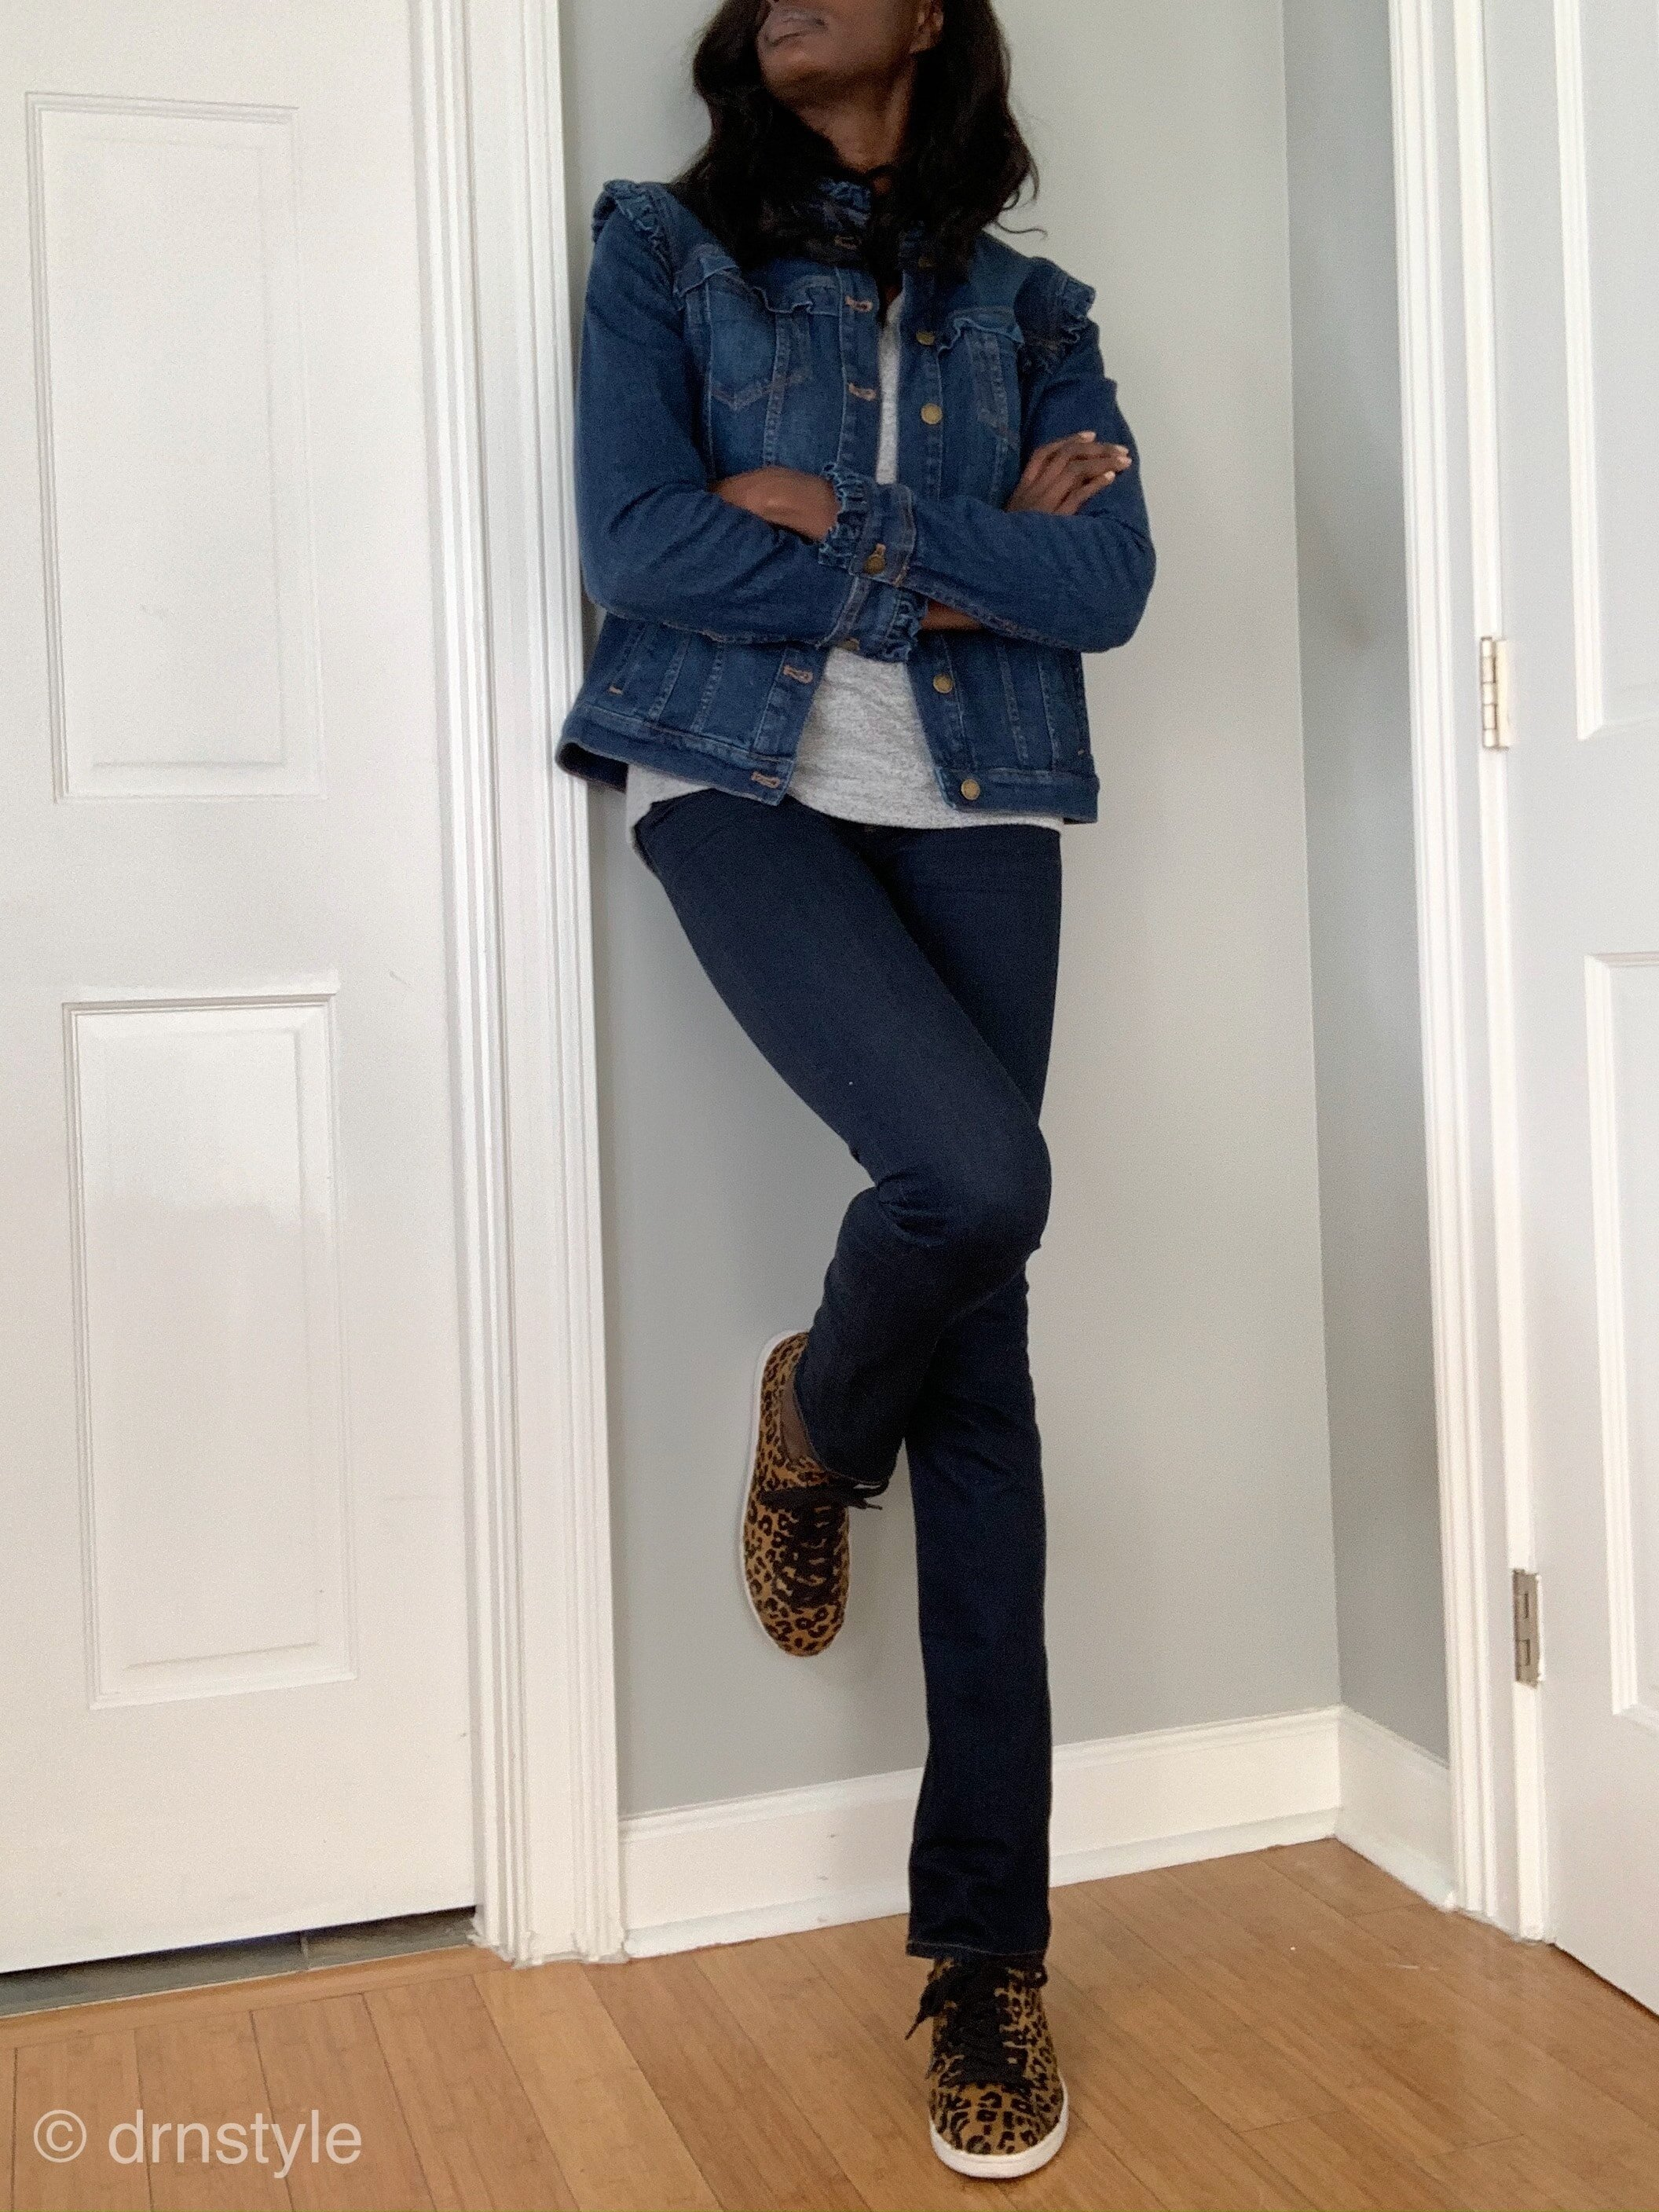 Leopard print tennis shoes with jeans, a grey t-shirt and jean jacket.